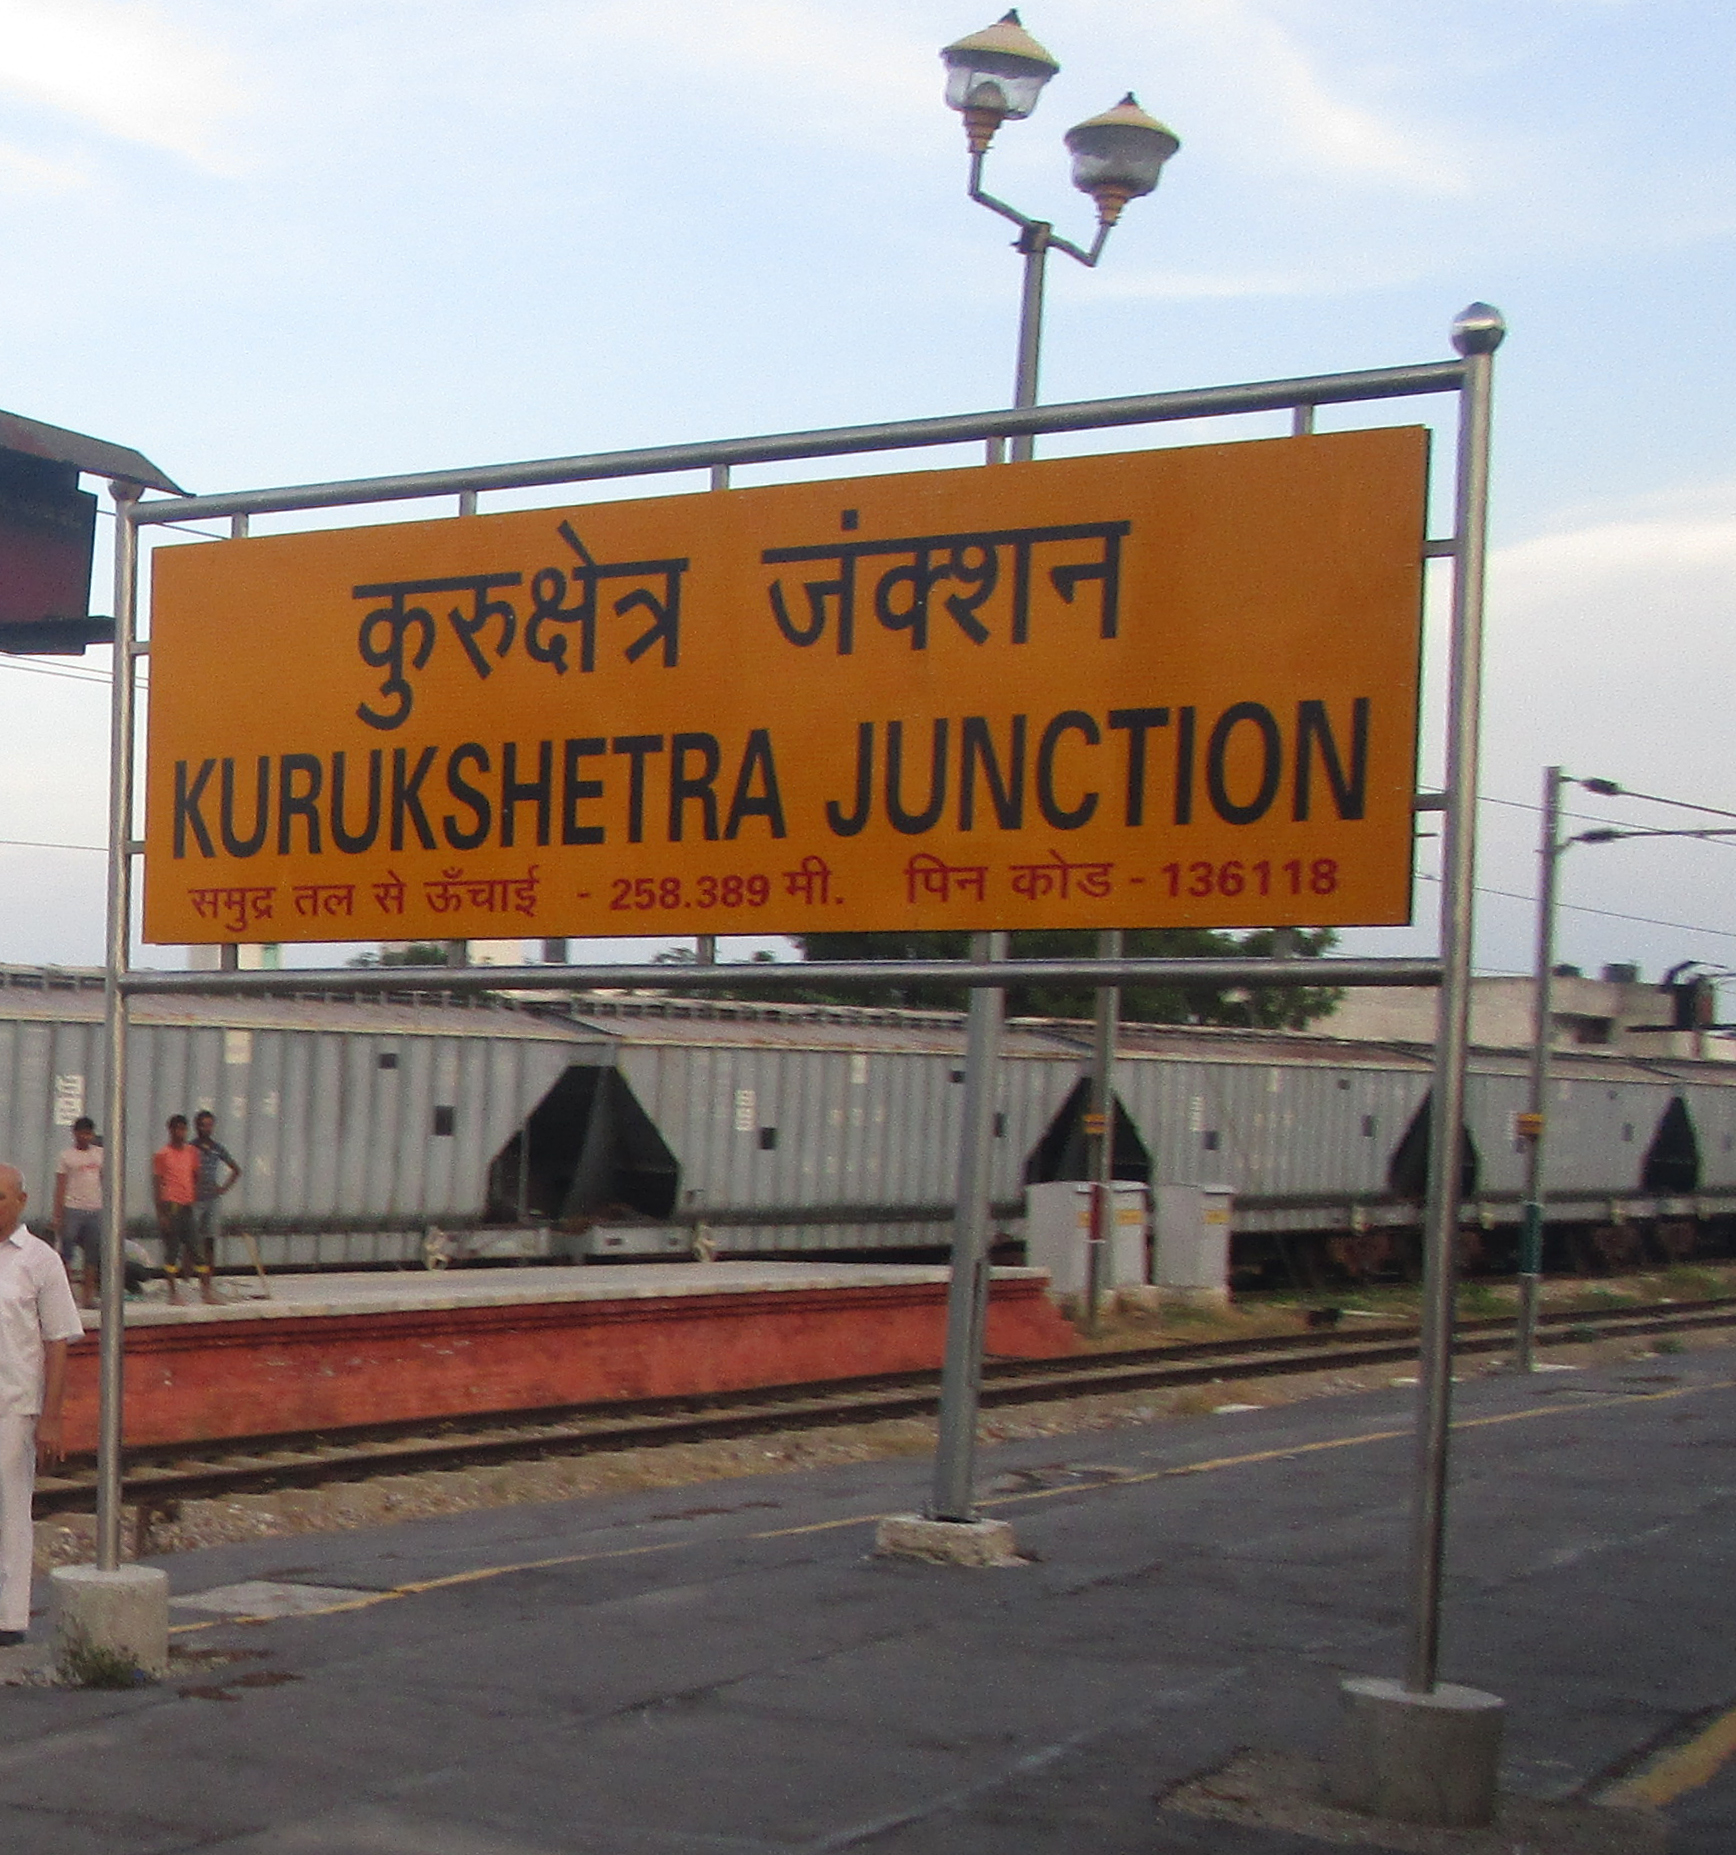 File:Kurukshetra Junction railway station (2).jpg - Wikimedia Commons